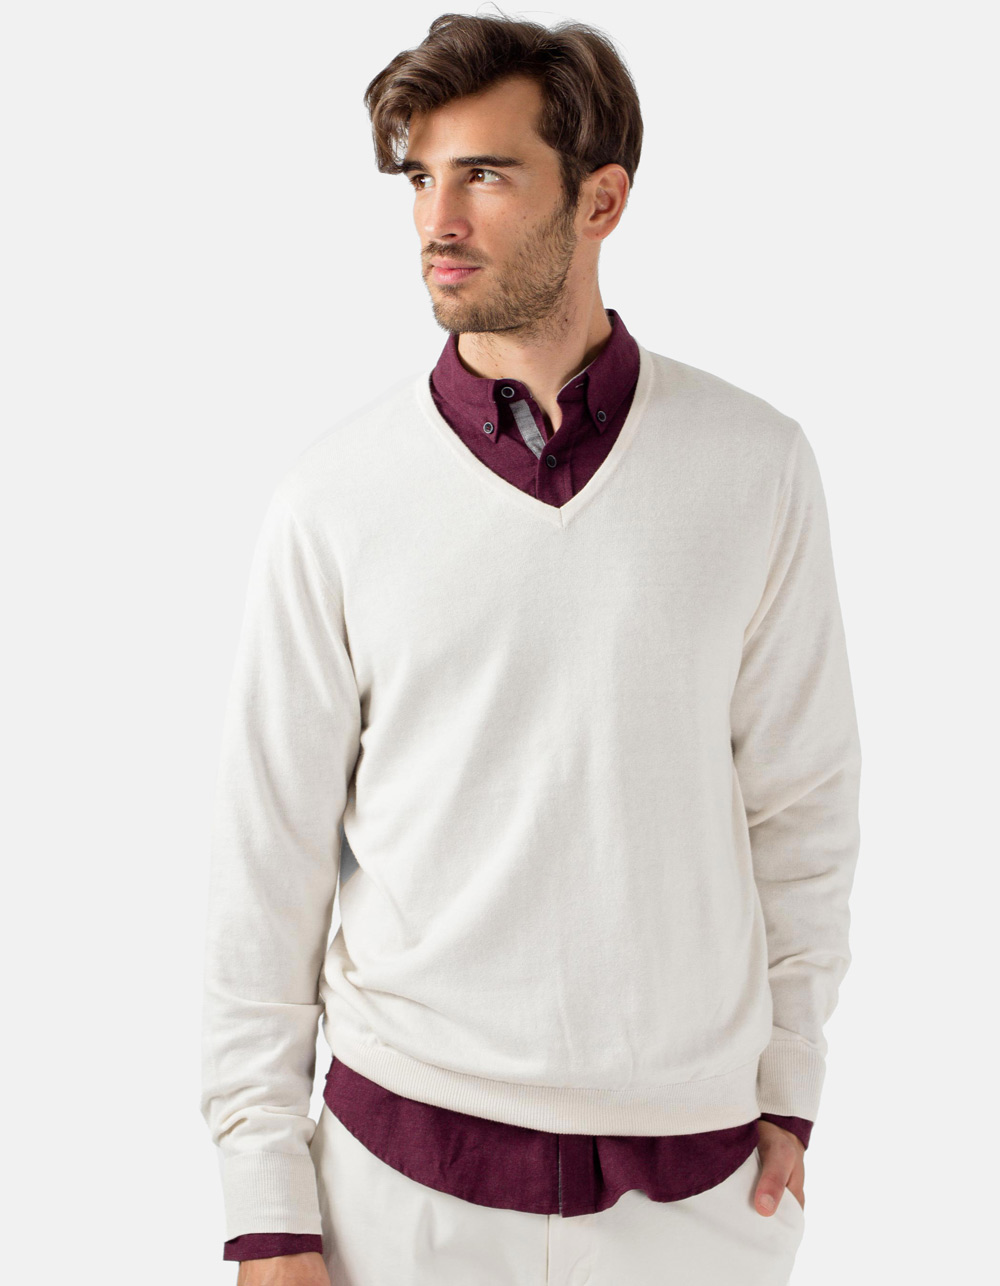 Bone v-neck sweater